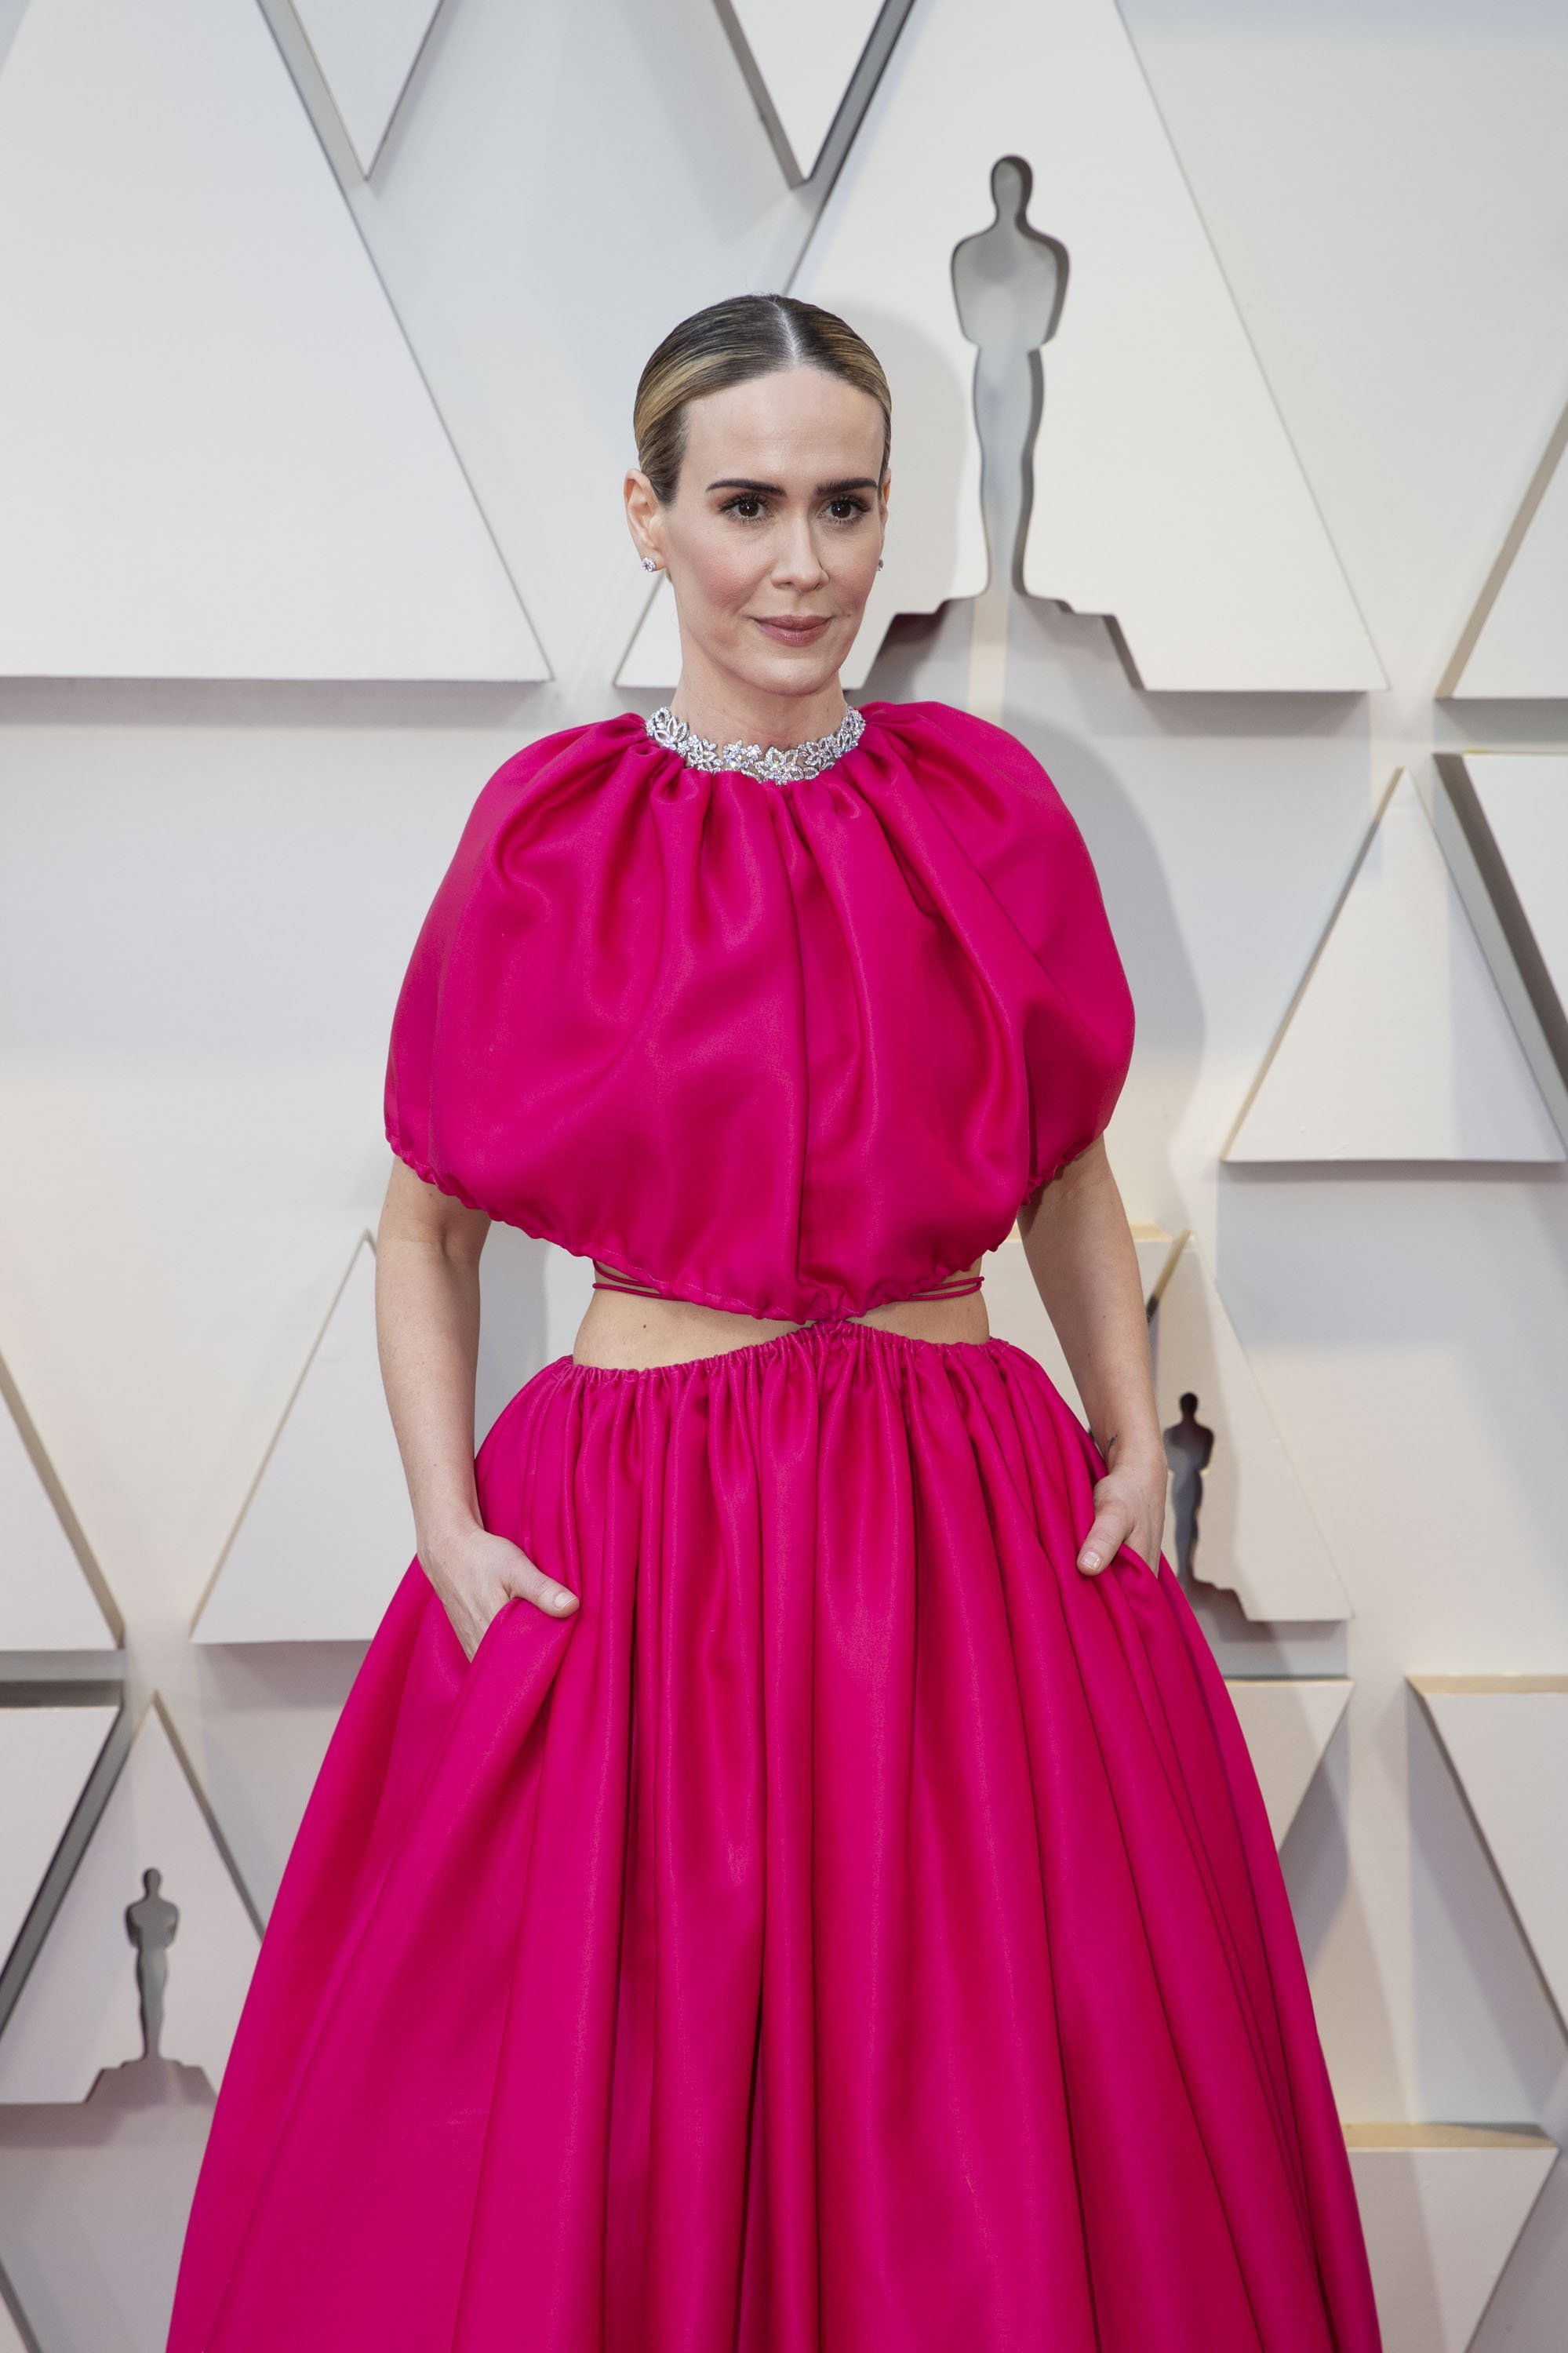 Sarah Paulson: Red Carpet from the The 91st Oscar broadcast on Sunday, Feb. 24, 2019, at the Dolby Theatre.